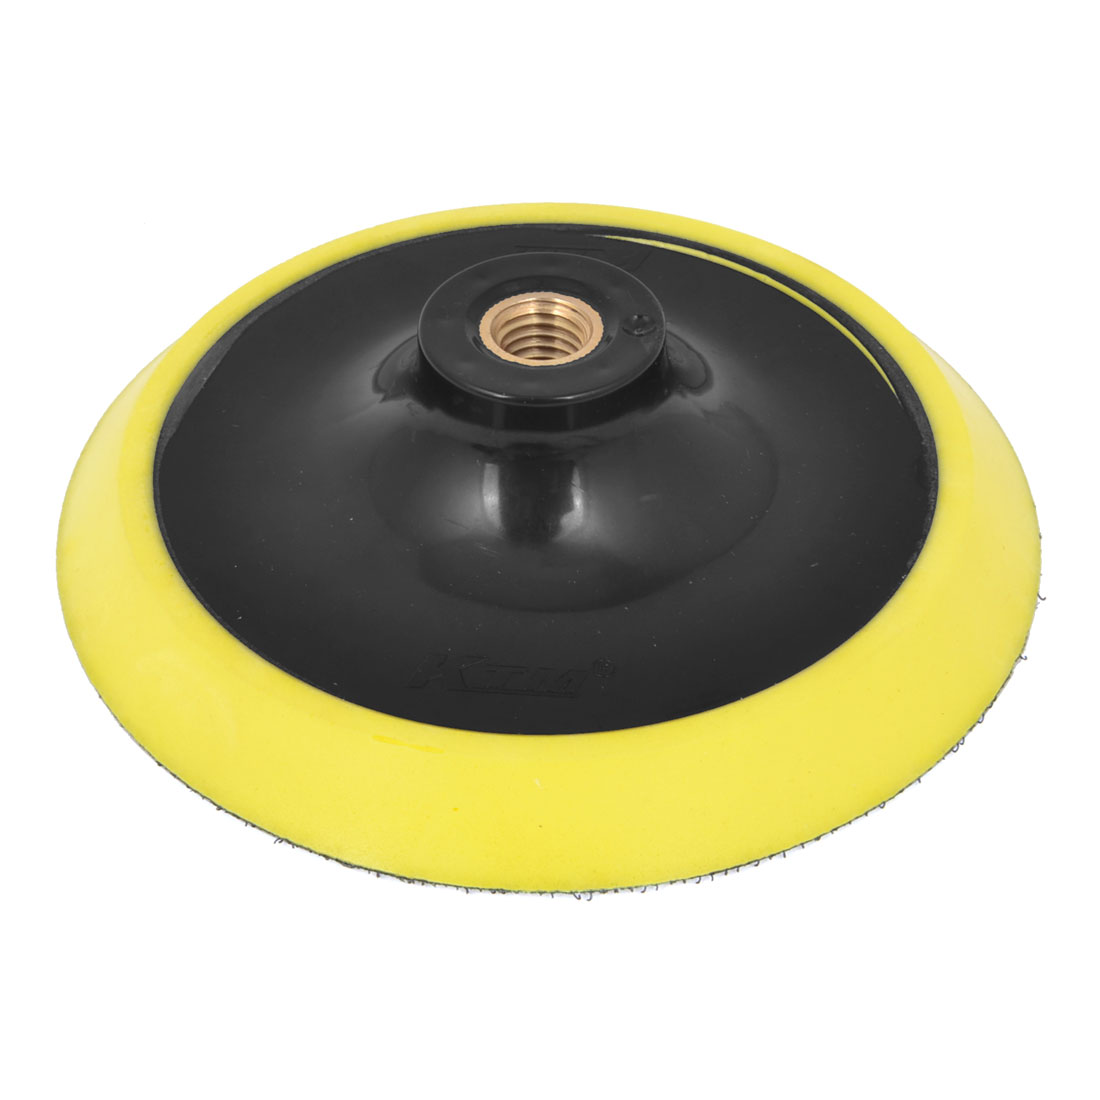 "Black Yellow Foam Plastic 6"" Dia Round Buffing Polishing Wheel Cleaner for Auto"